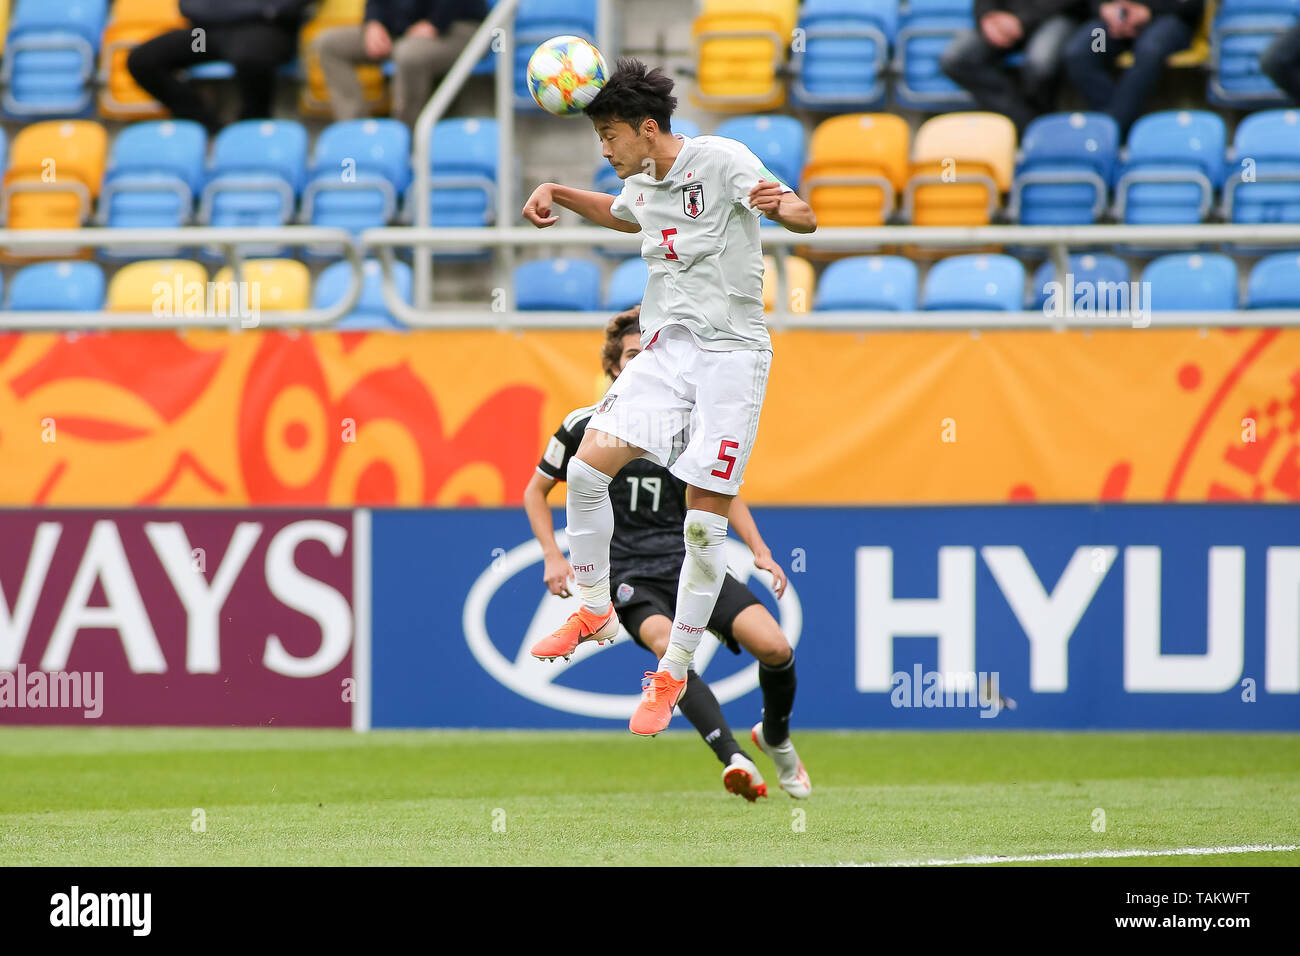 Gdynia Stadium, Gdynia, Poland - 26th May, 2019: Yukinari Sugawara from Japan and Antonio Figueroa from Mexico are seen in action during FIFA U-20 World Cup match between Mexico and Japan (GROUP B) in Gdynia. (Final score; Mexico 0:3 Japan) - Stock Image